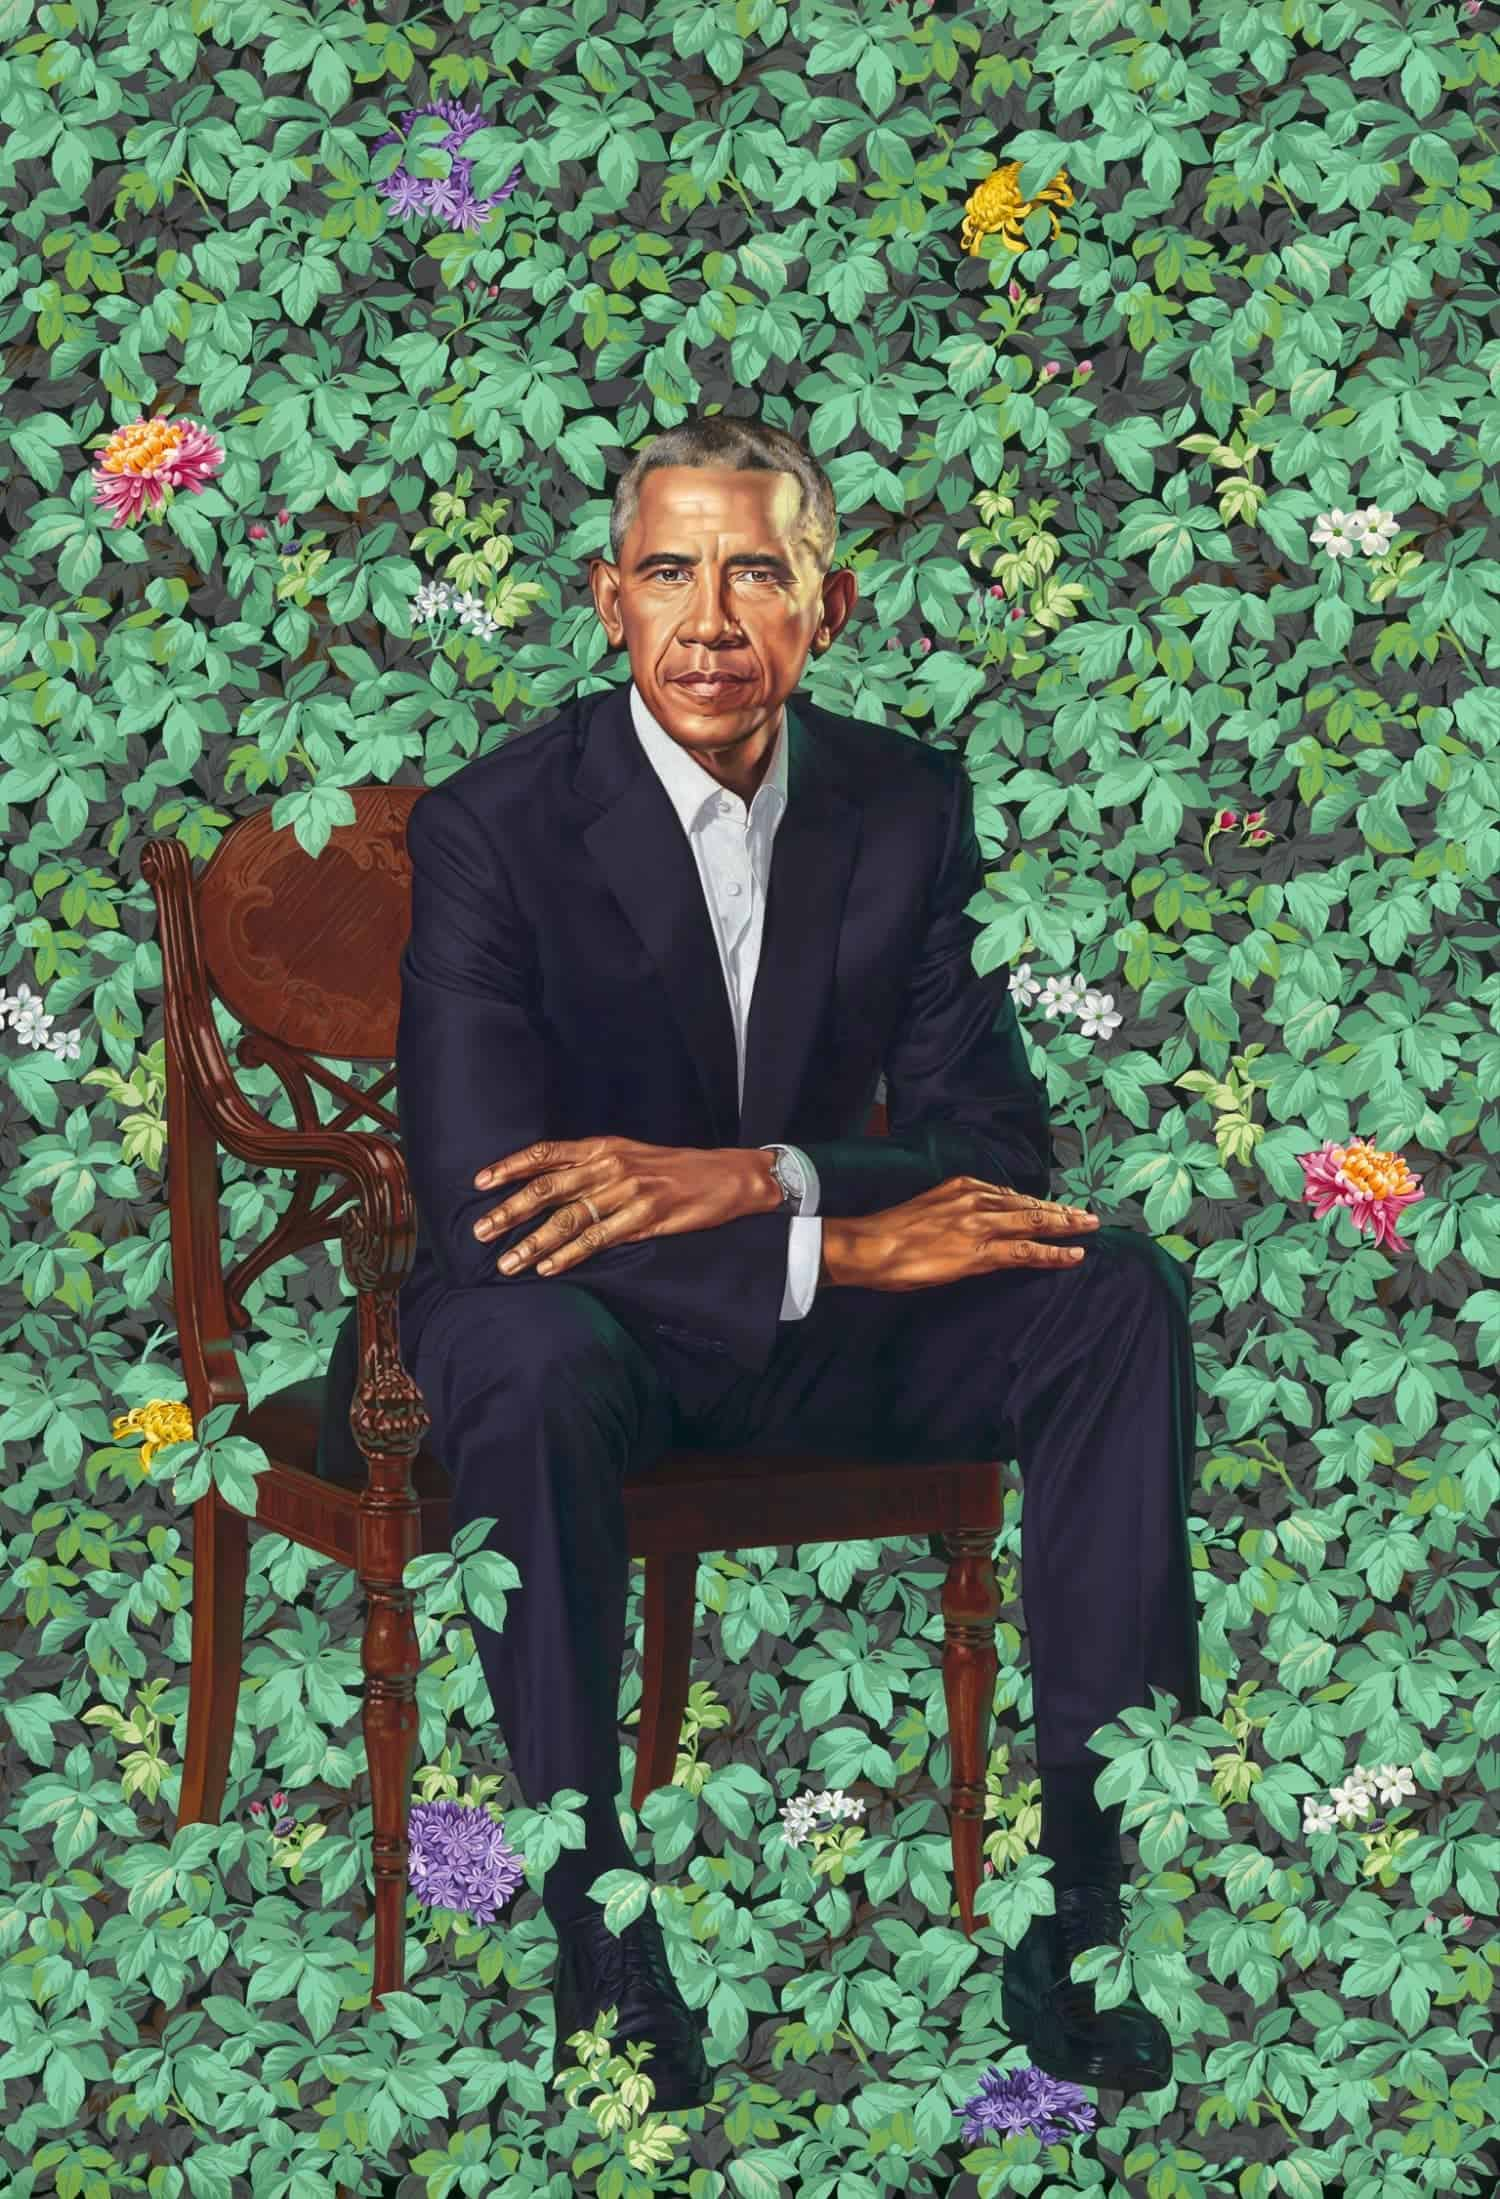 Barack Obama by Kehinde Wiley, oil on canvas, 2018. Courtesy National Portrait Gallery, Smithsonian Institution.